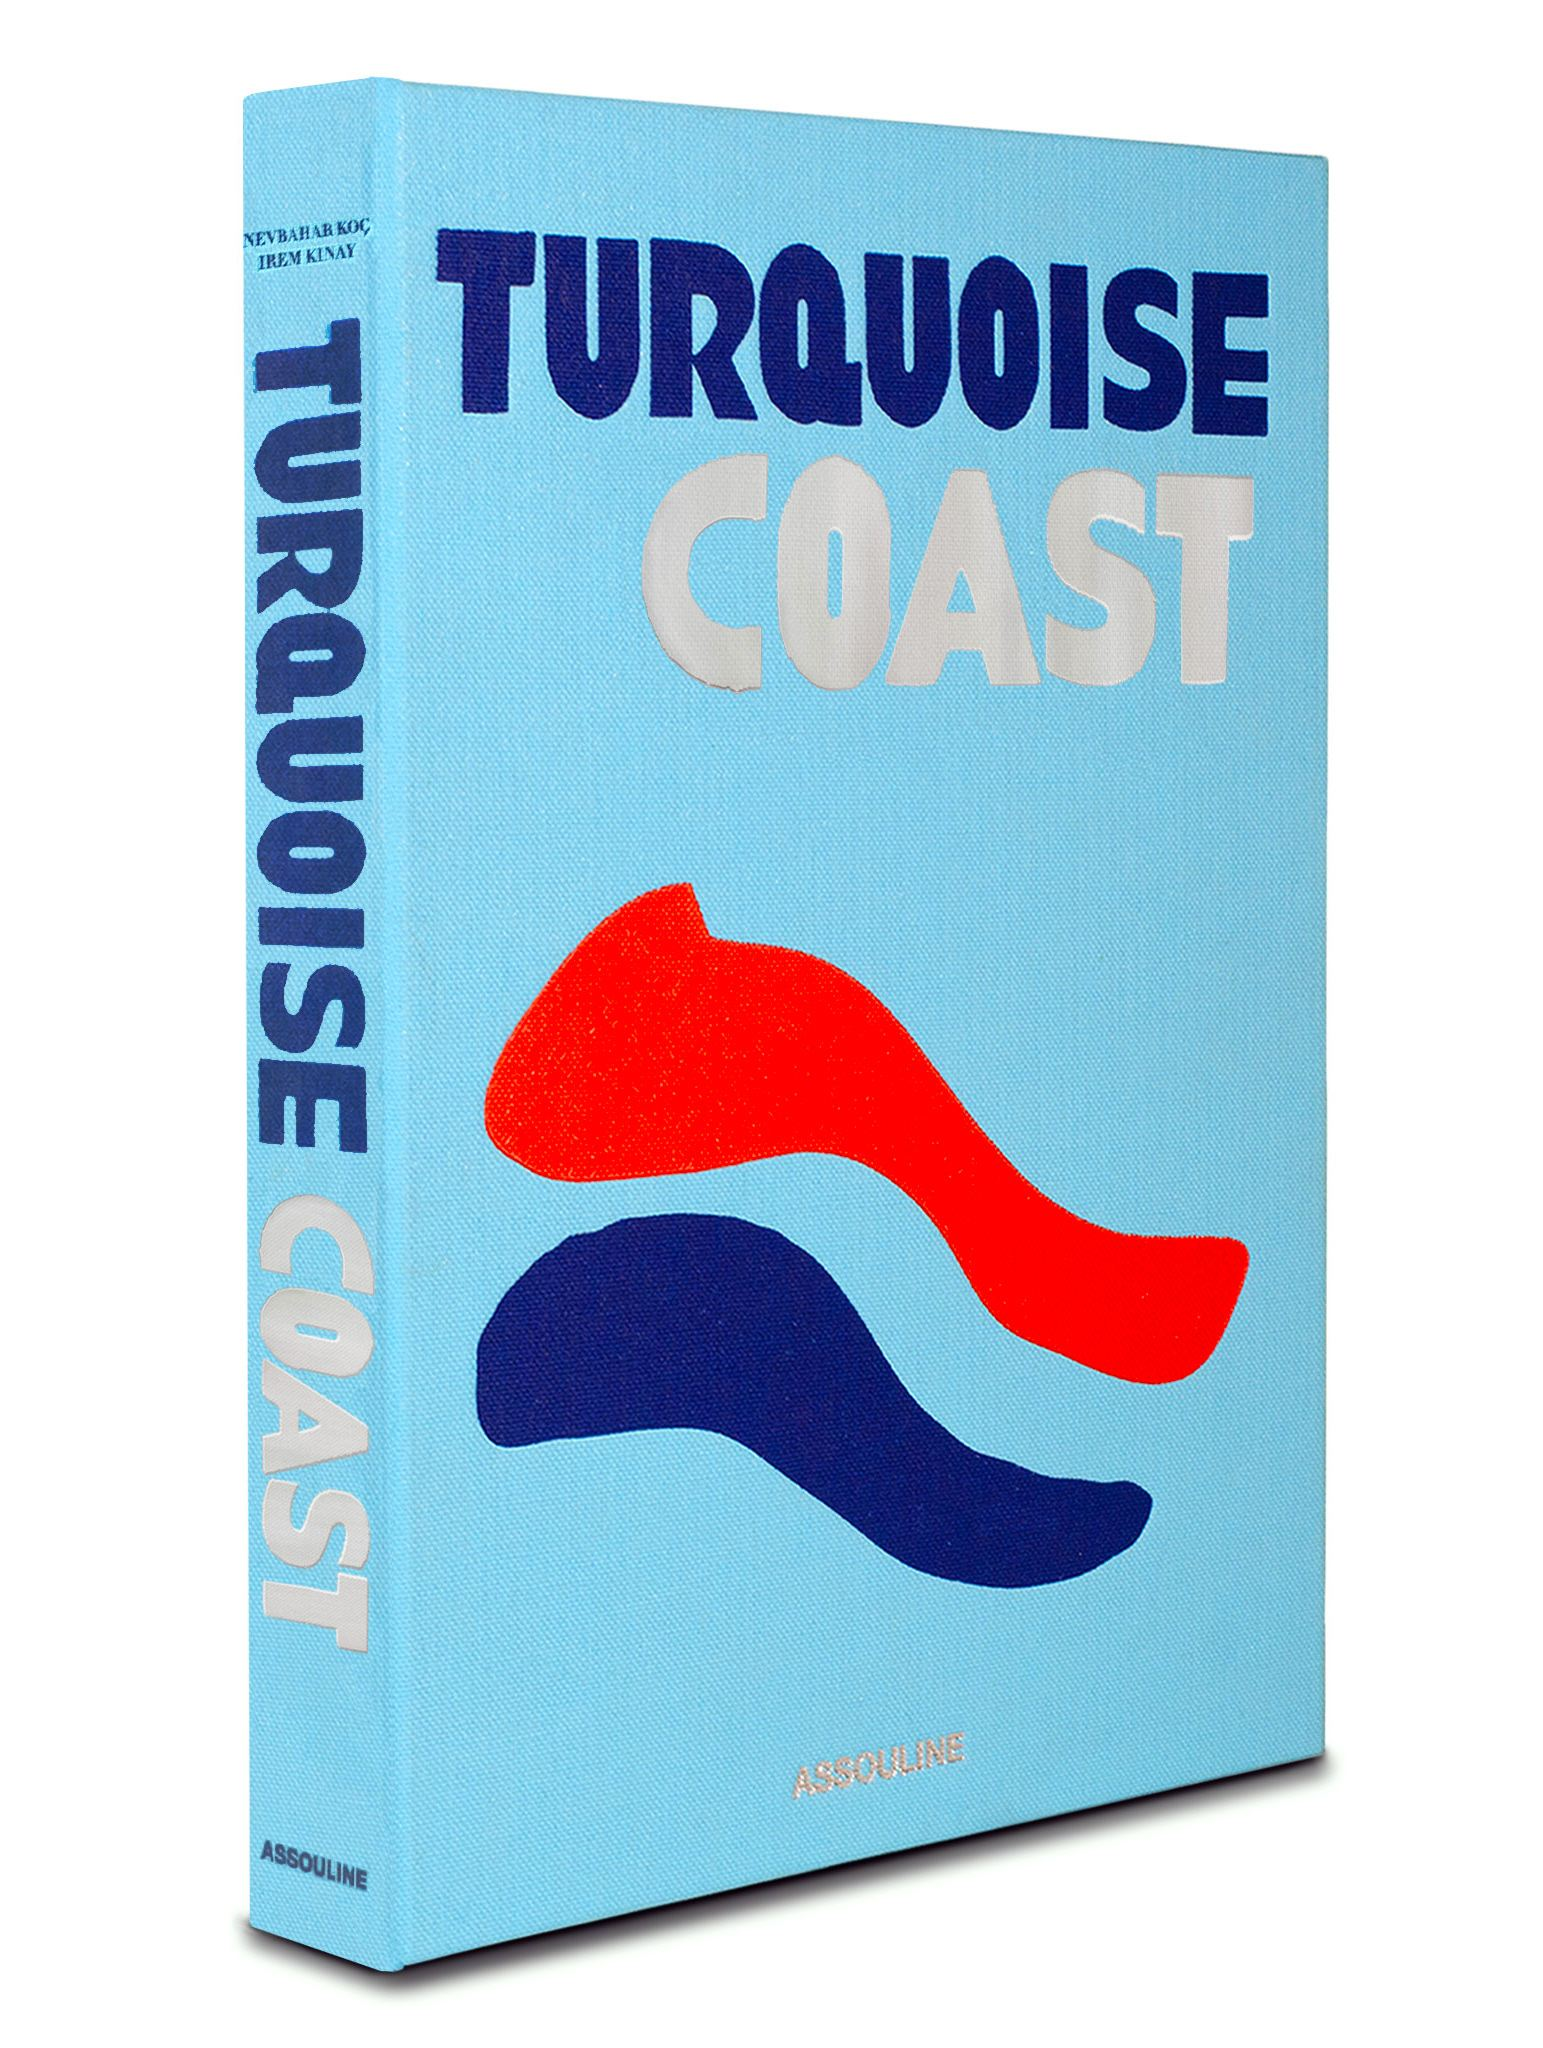 Published by Assouline, Turquoise Coast is produced by Nevbahar Koc and Irem Kinay, photographs by Oliver Pilcher.